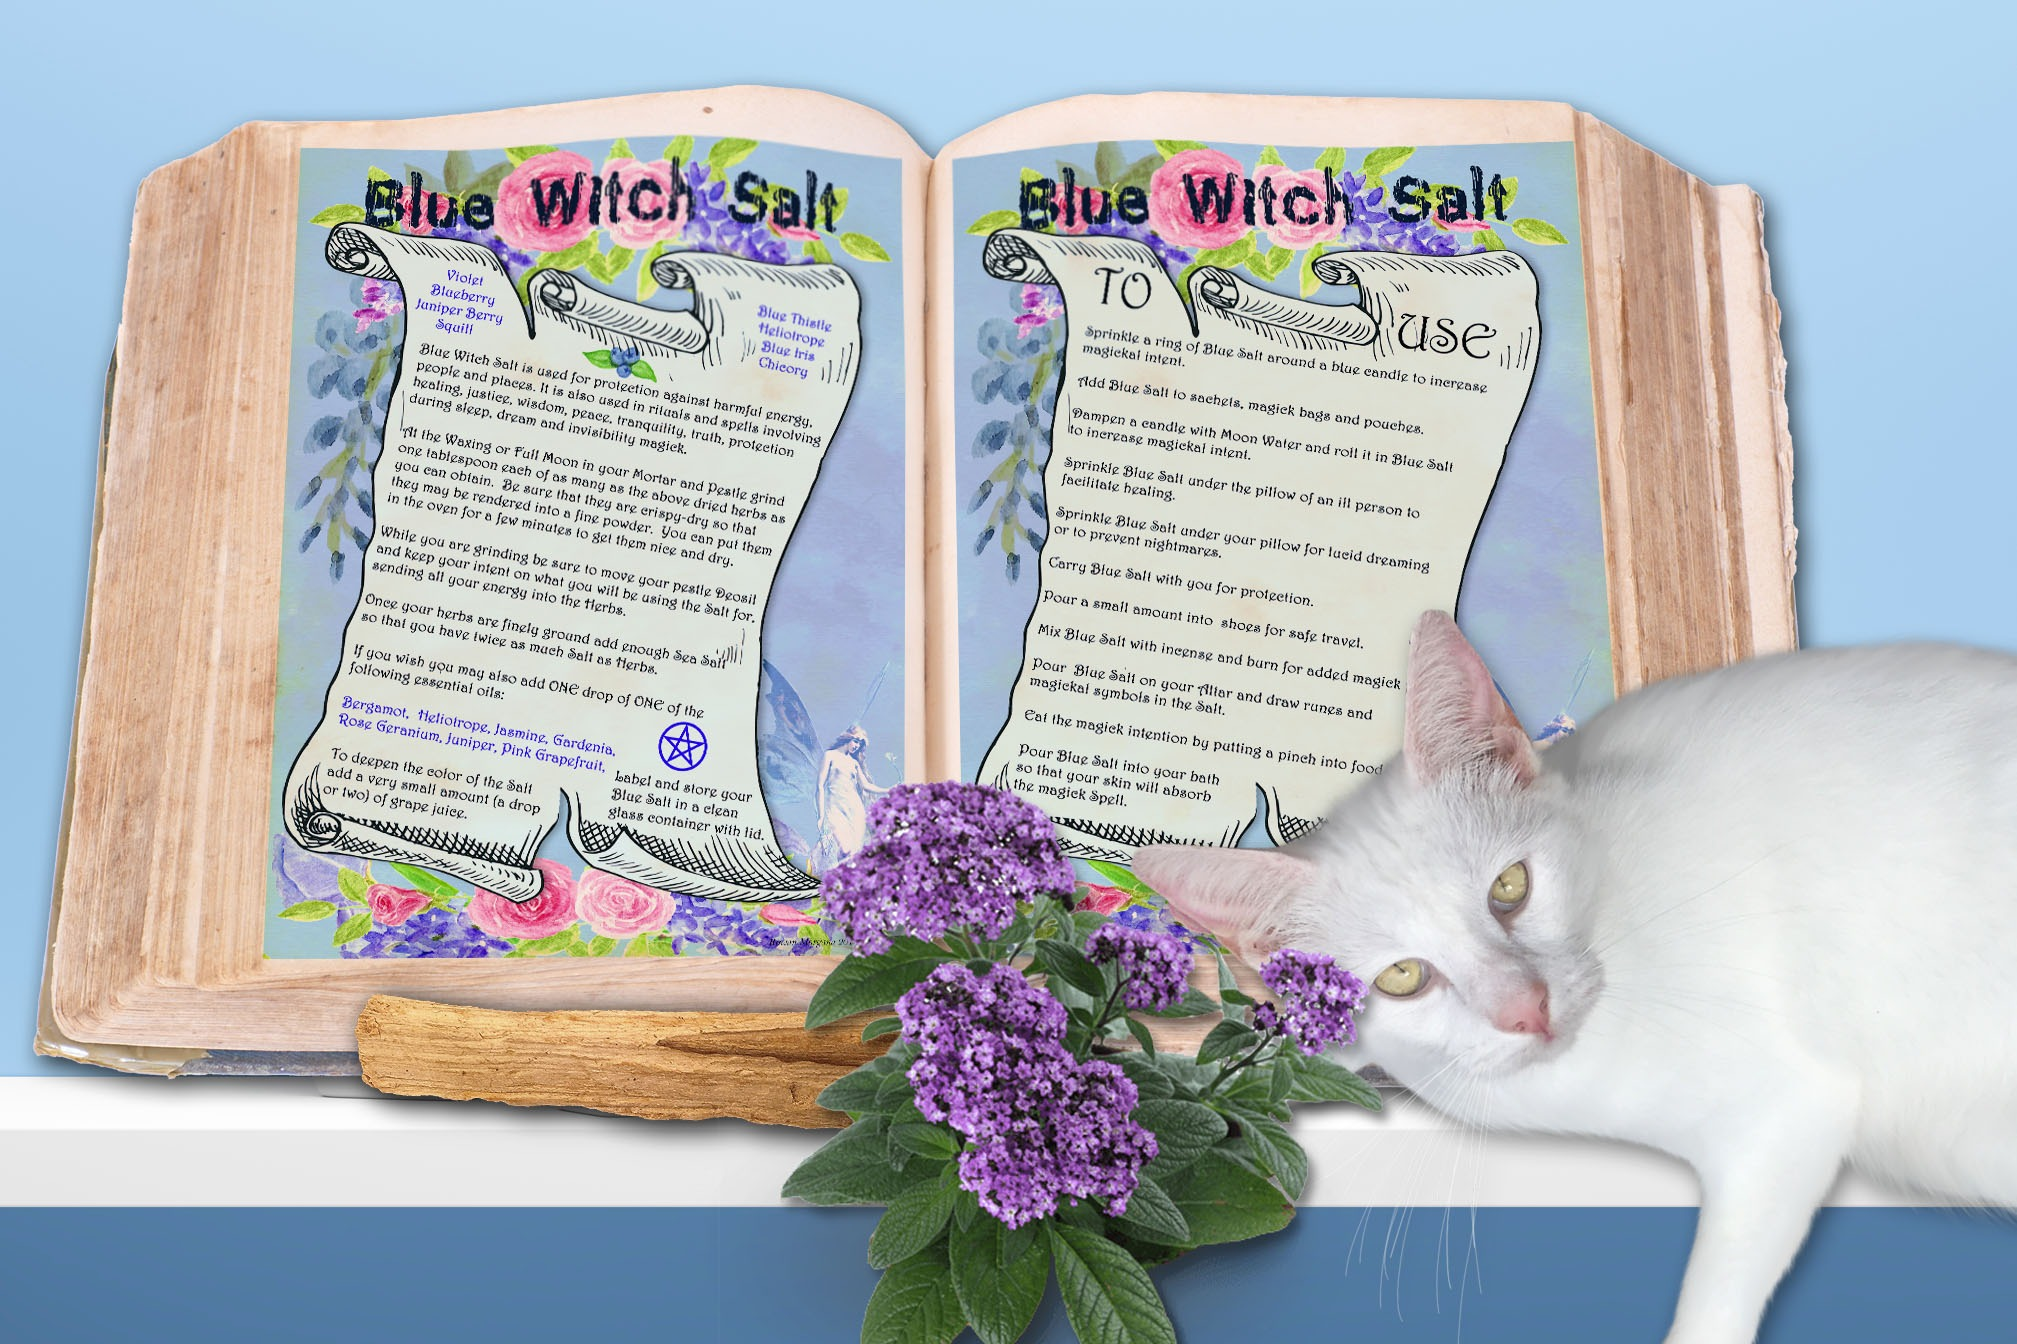 BLUE WITCH SALT Recipe - For Protection and Healing